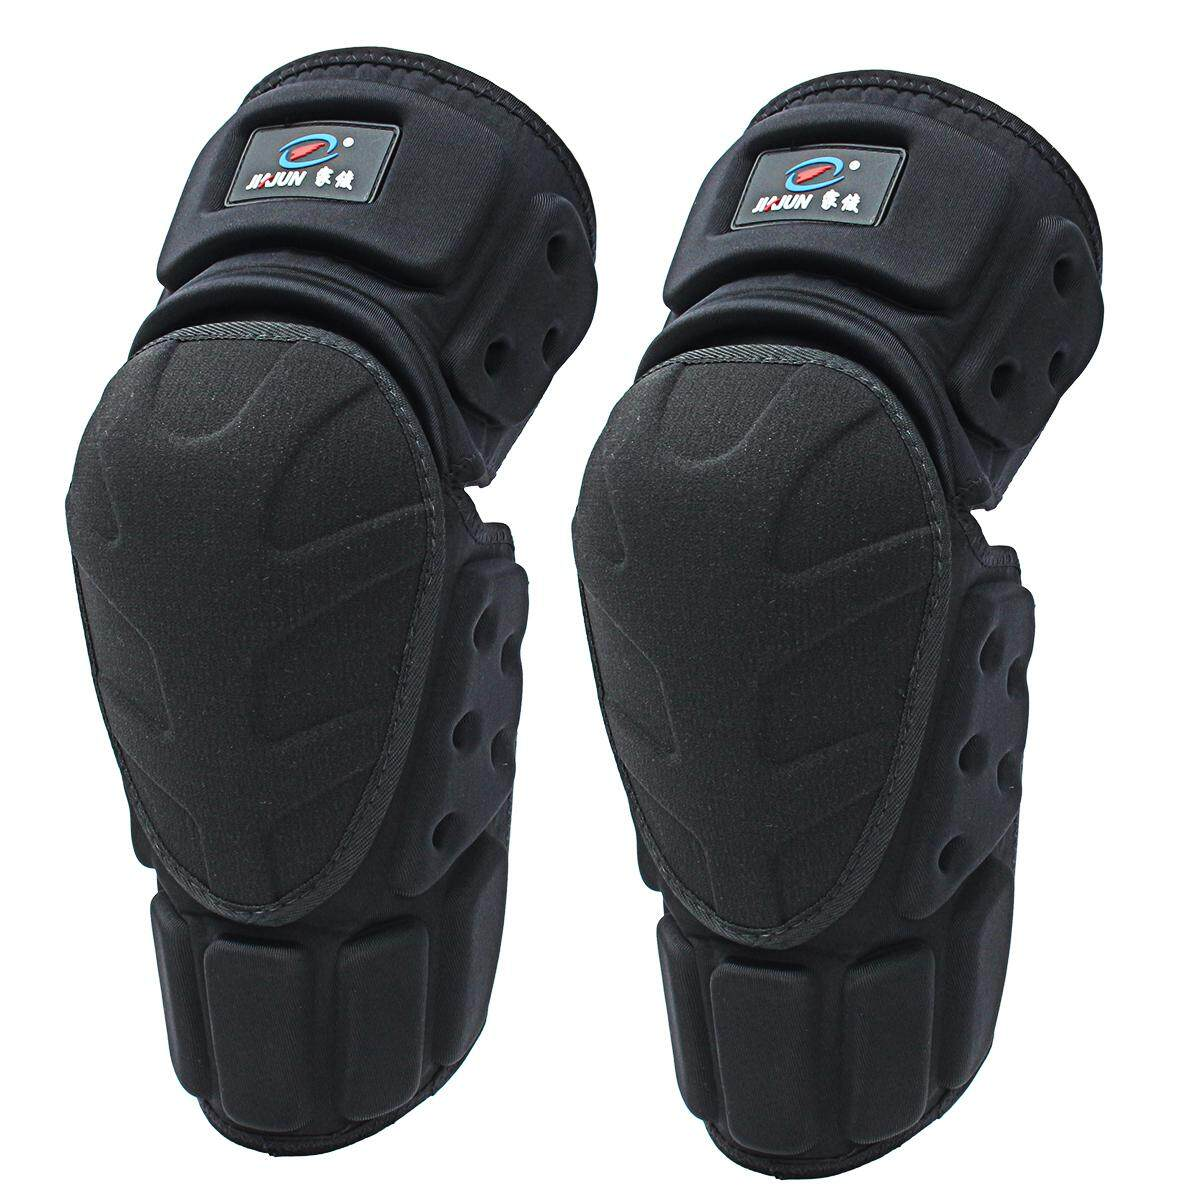 Moto Knee Pads Black Protective Motorcycle Kneepad Motorcycle Motocross Bike Bicycle Pads Knee Pads Protective Guards (Black)XL - intl